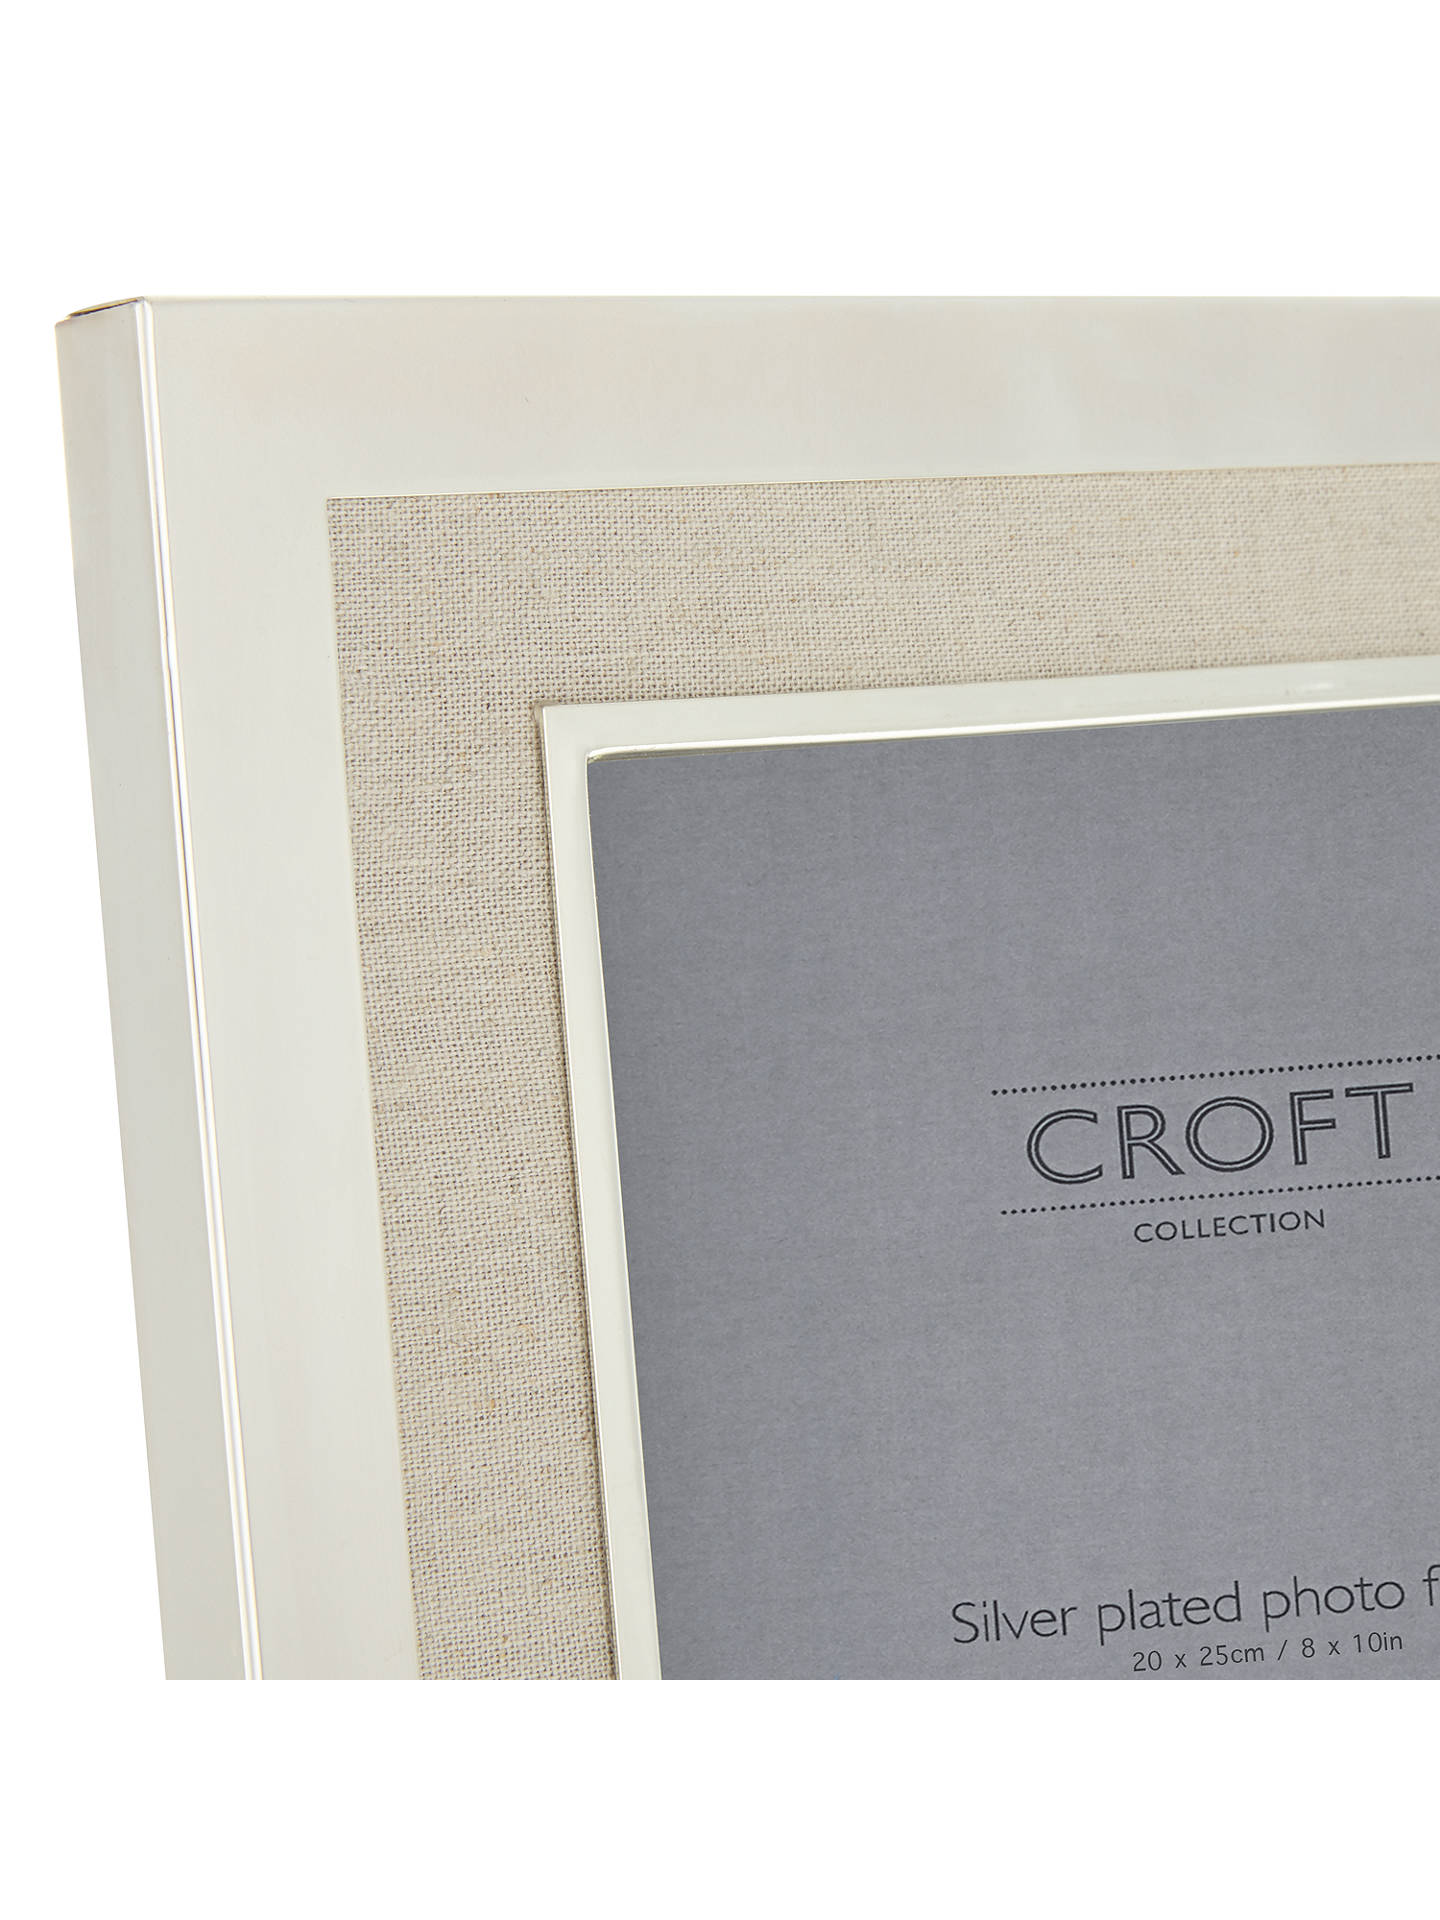 Croft Collection Silver Plated and Linen Photo Frame, 8 x 10\